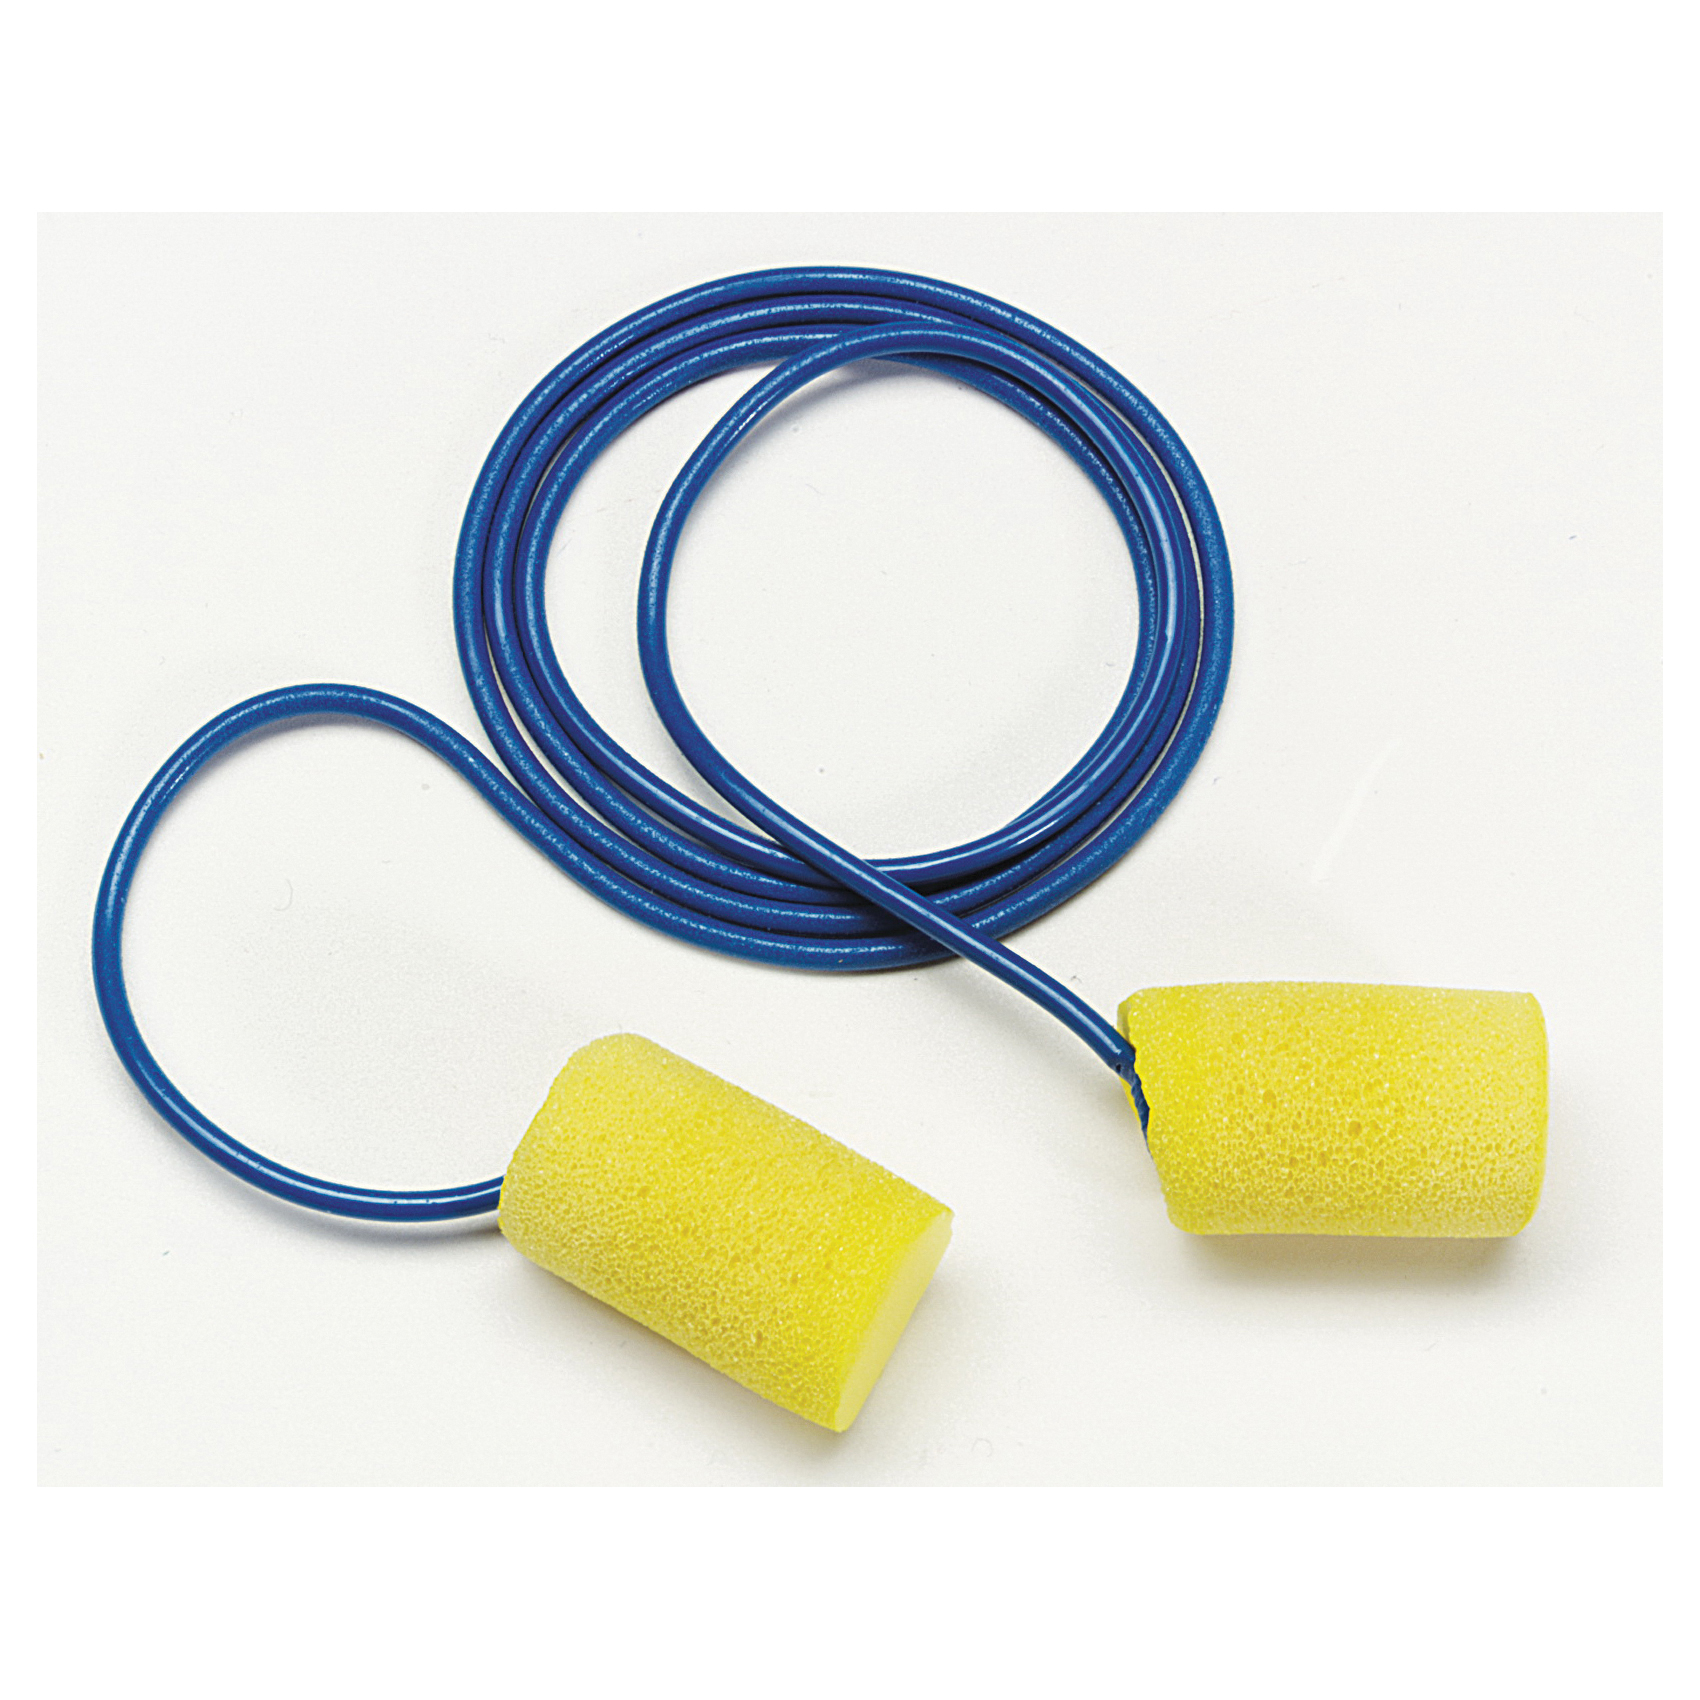 3M™ E-A-R™ EXPRESS™ Pod Plugs™ Earplugs 311-1115, Corded, Assorted ColorGrips, Pillow Pack, 400 Pair/Case